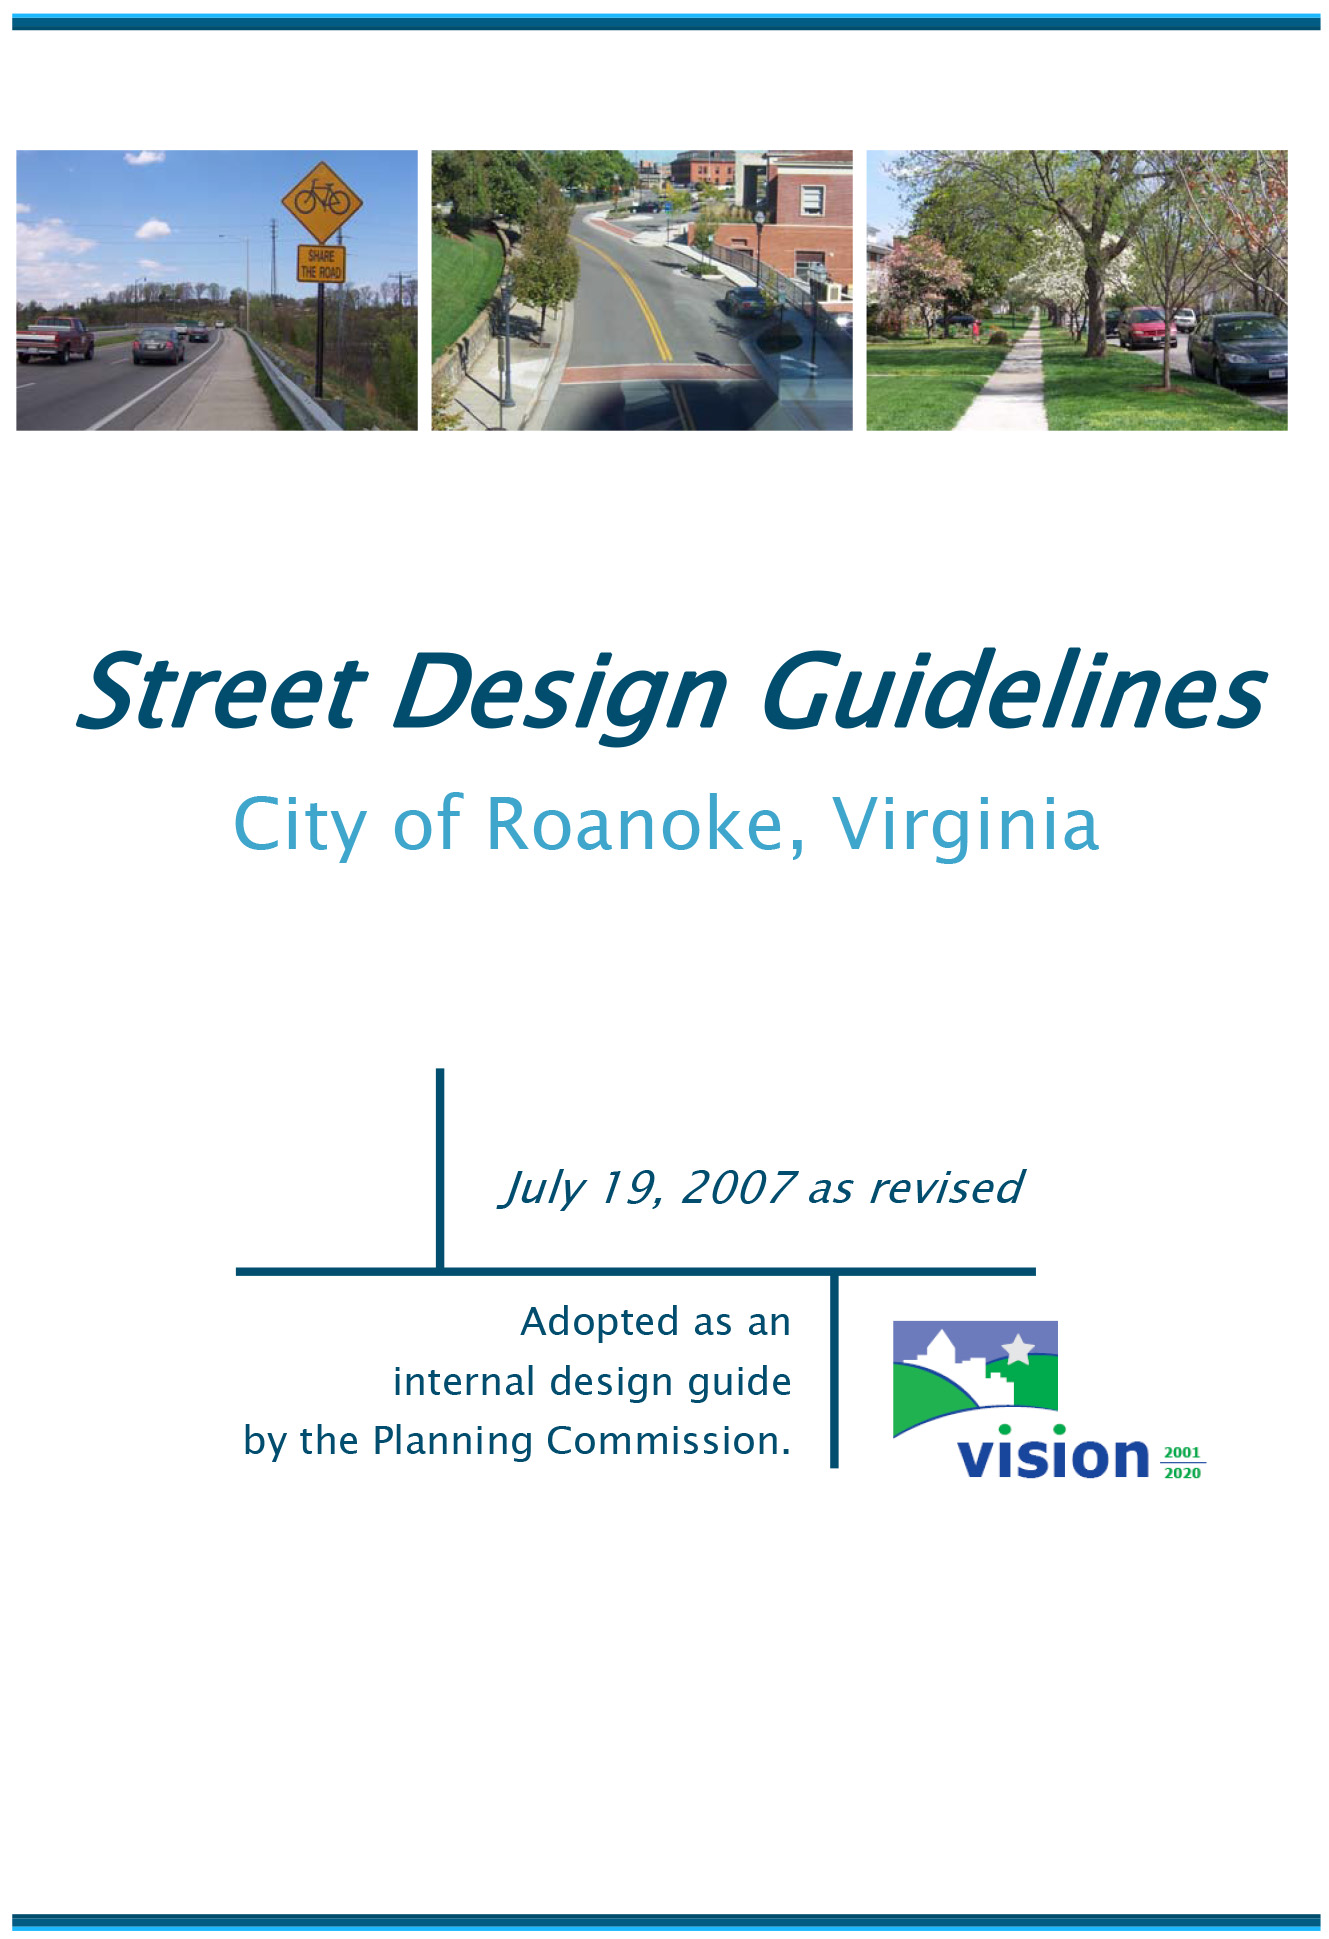 Street Design Guidelines Cover